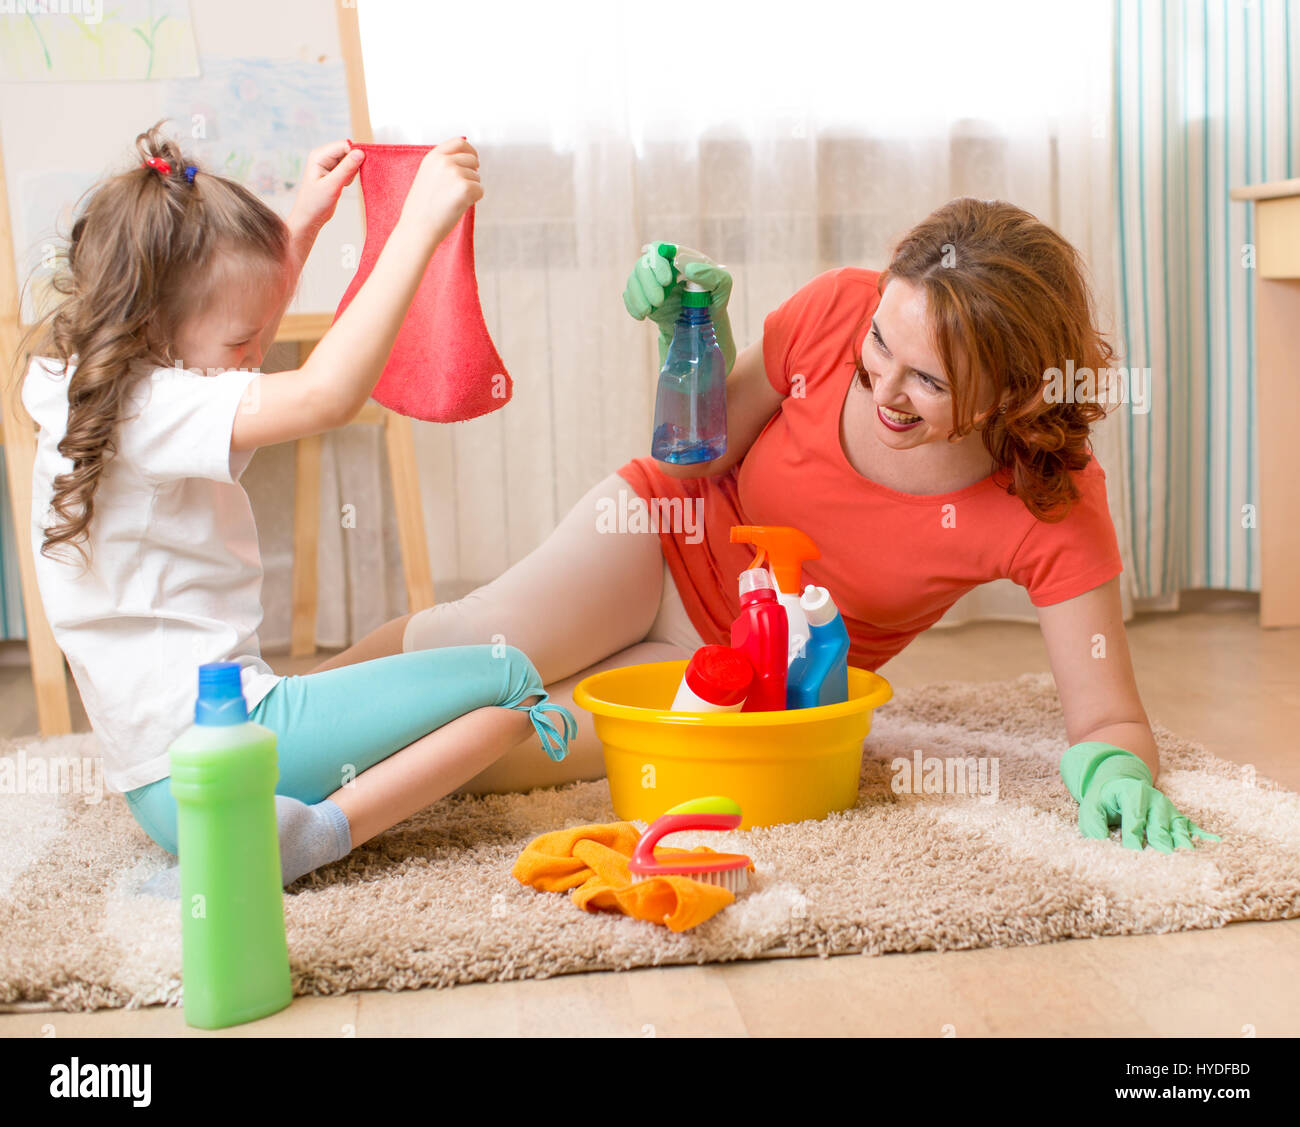 Woman and kid playing before housework - Stock Image